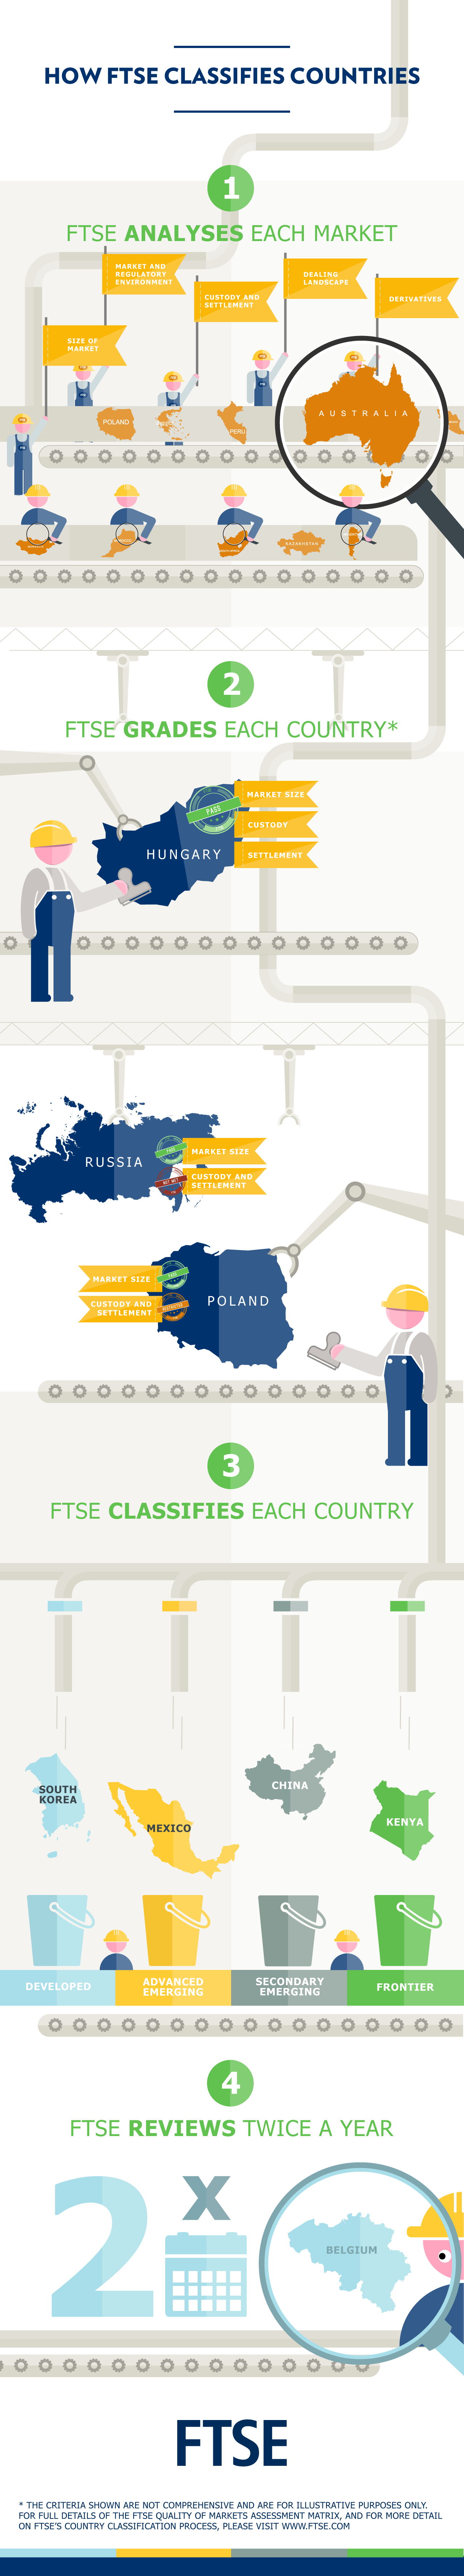 How FTSE classifies countries